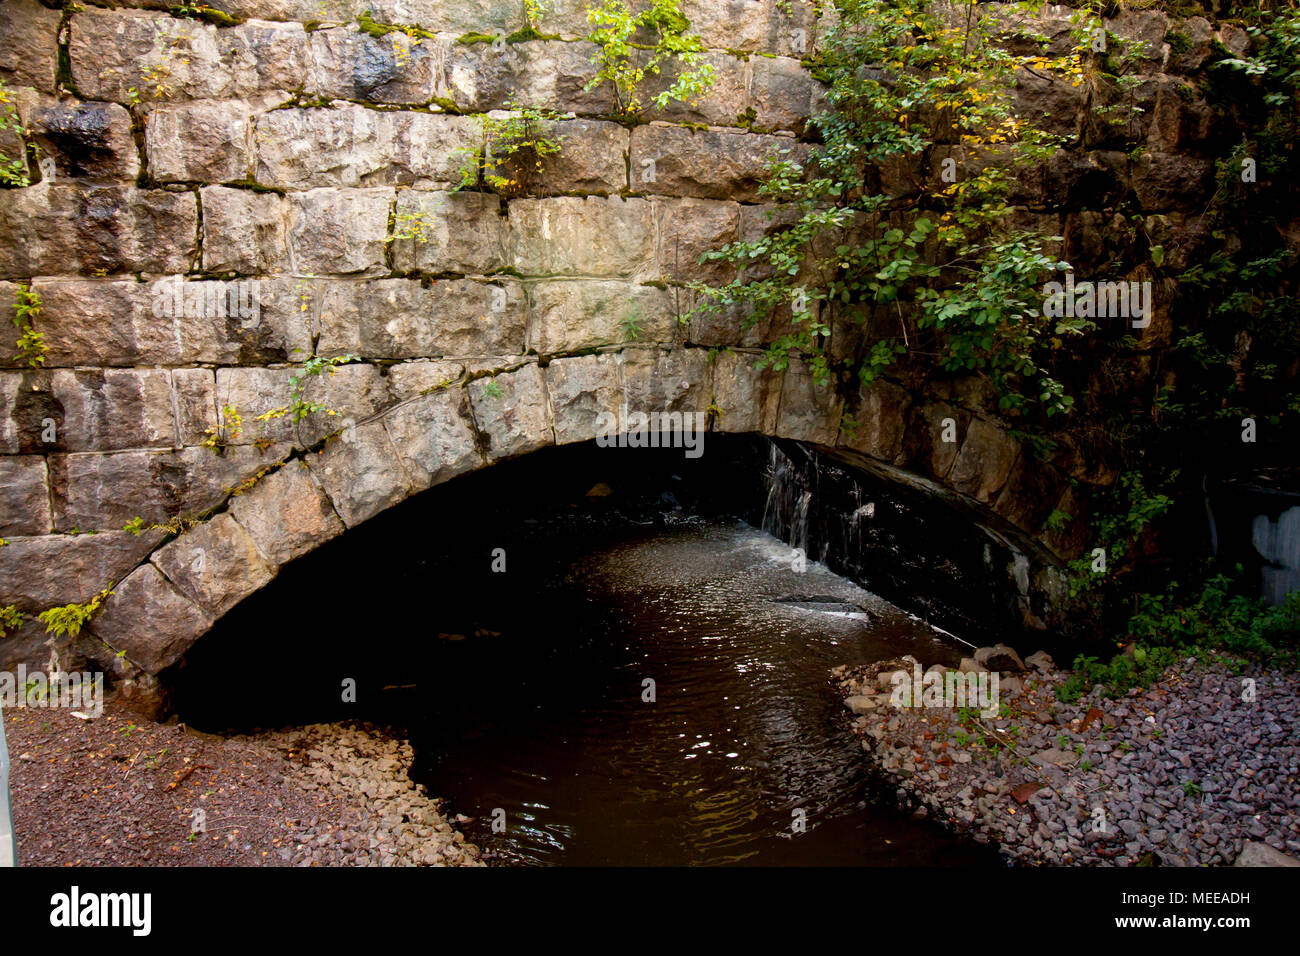 Old stone bridge coverd with moss and torrential river - Stock Image